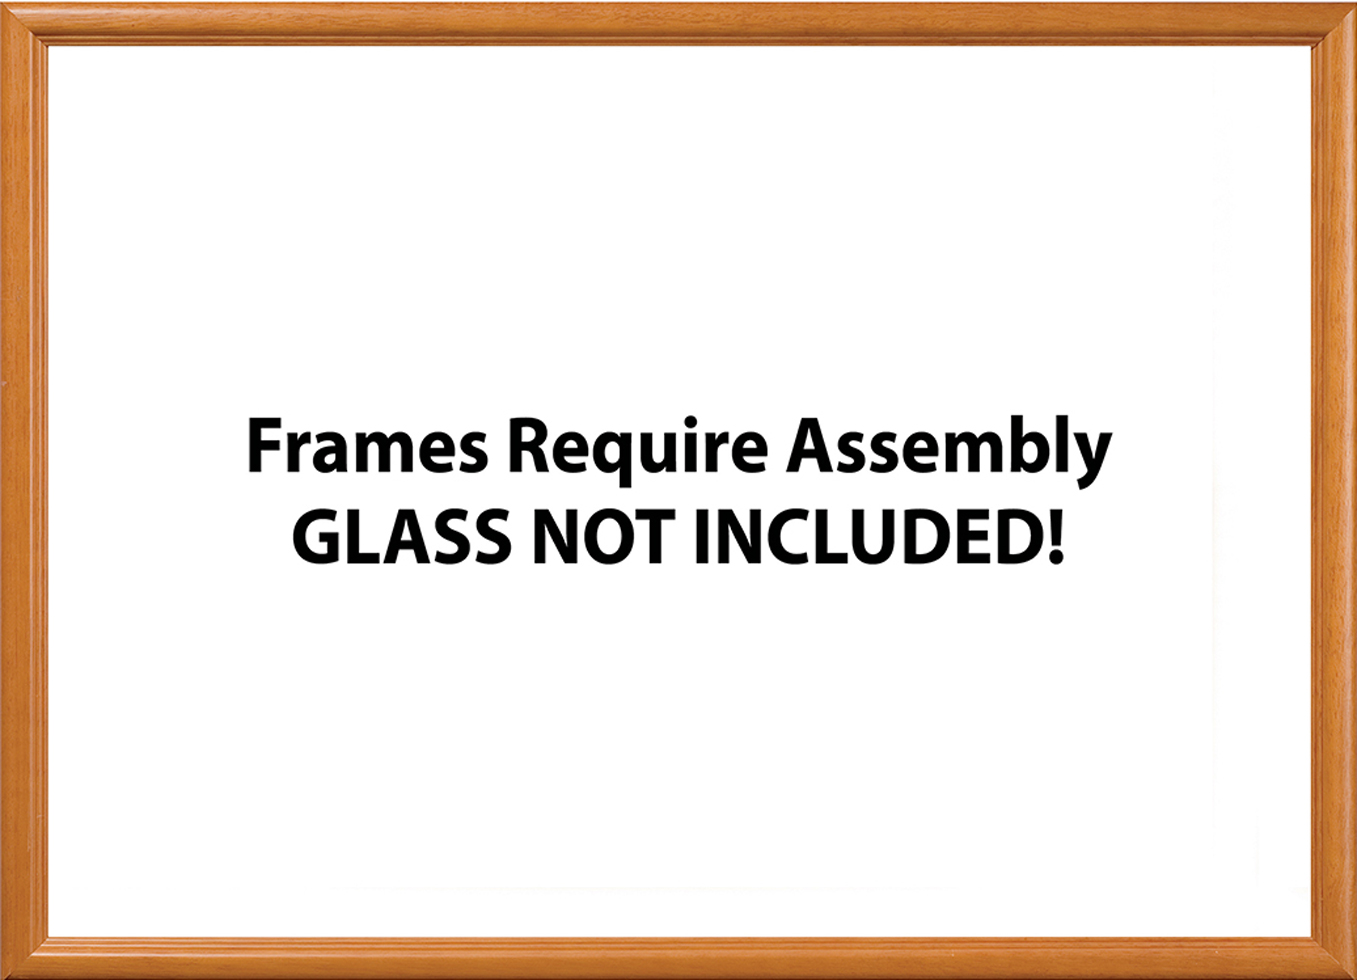 19.25 x 26.75 Wood Frame  Natural